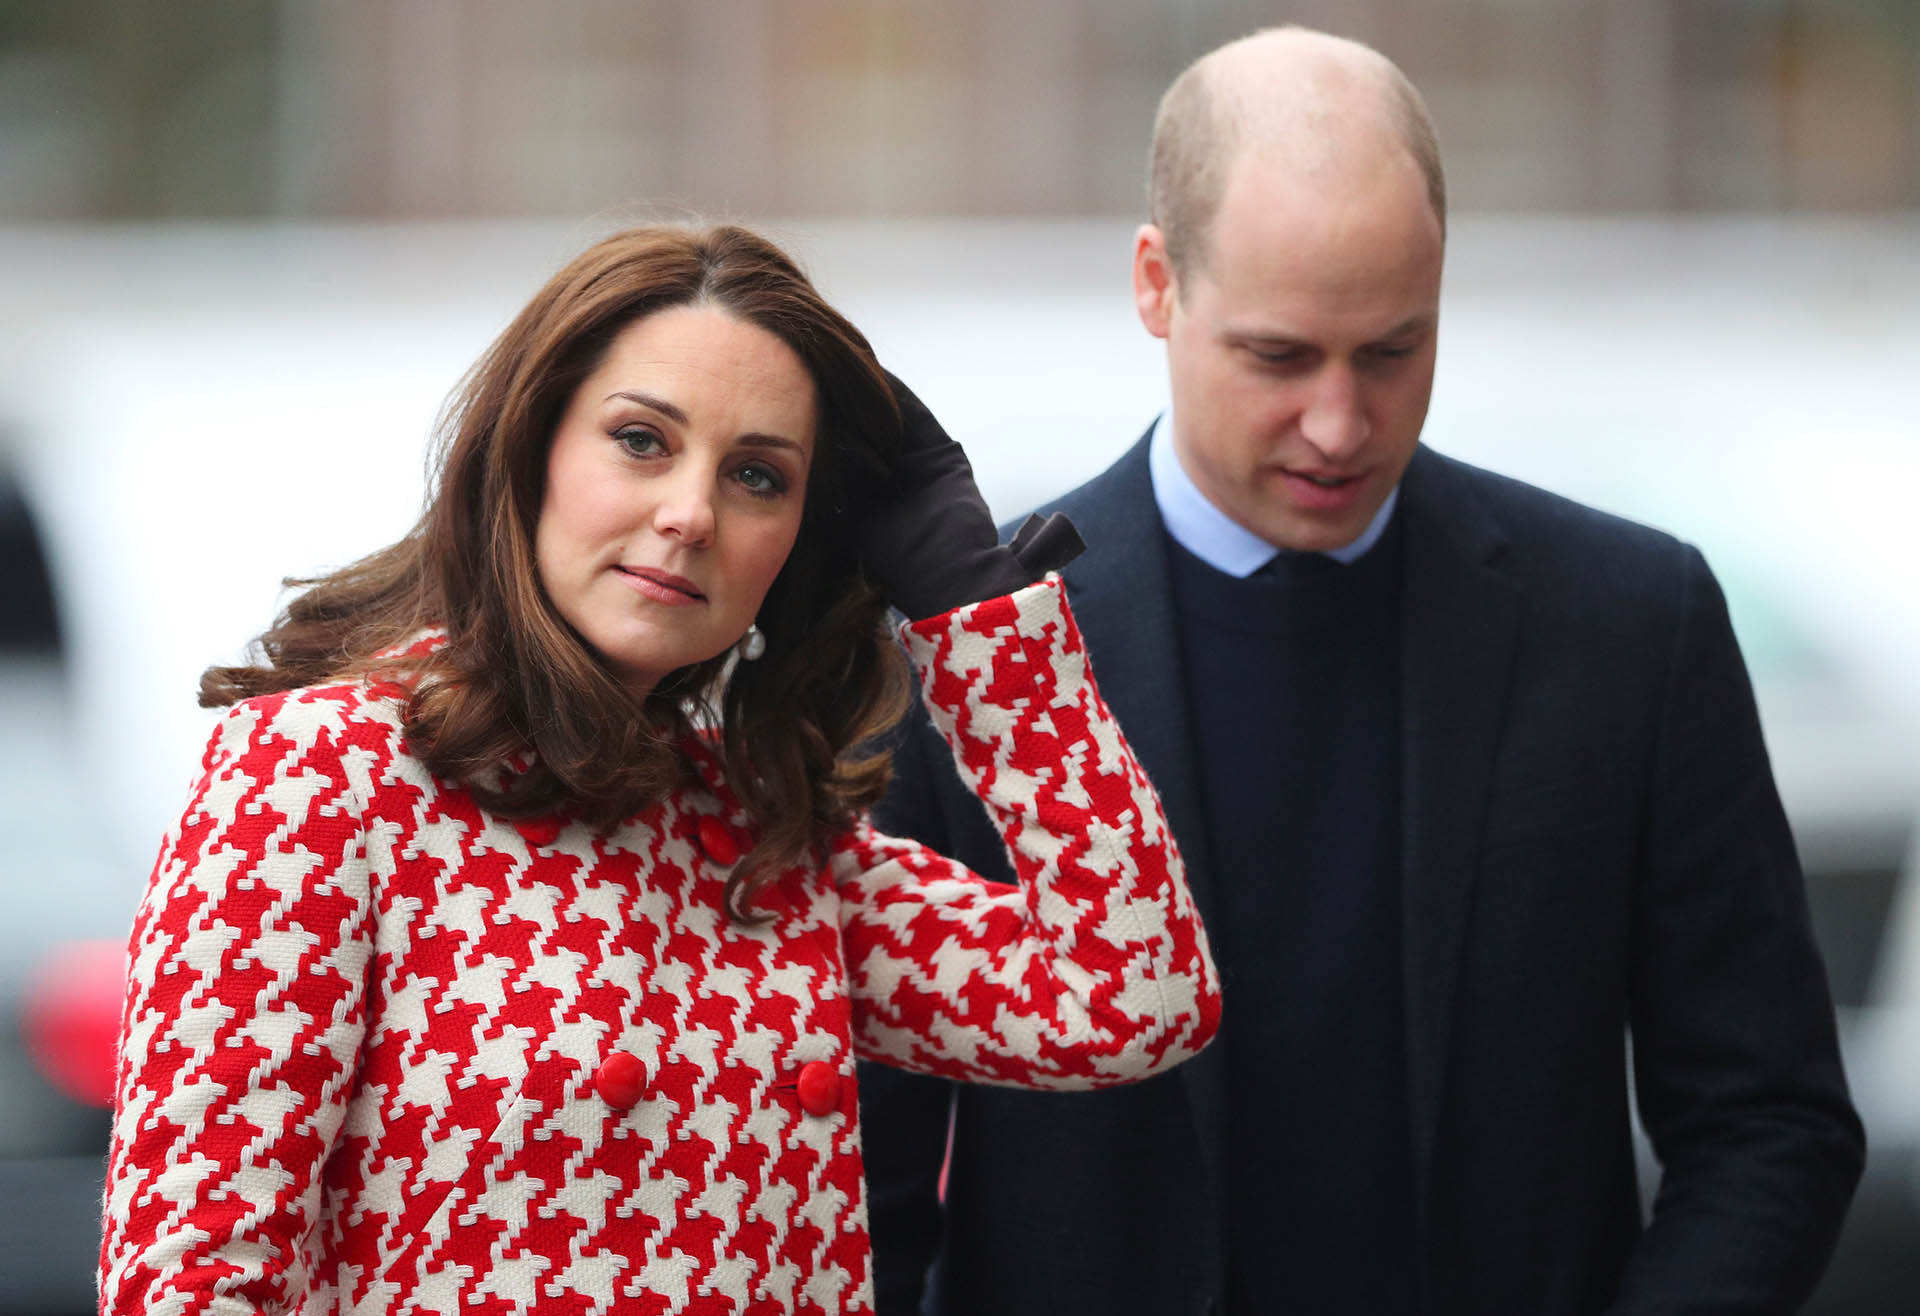 El príncipe William y la duquesa de Cambridge